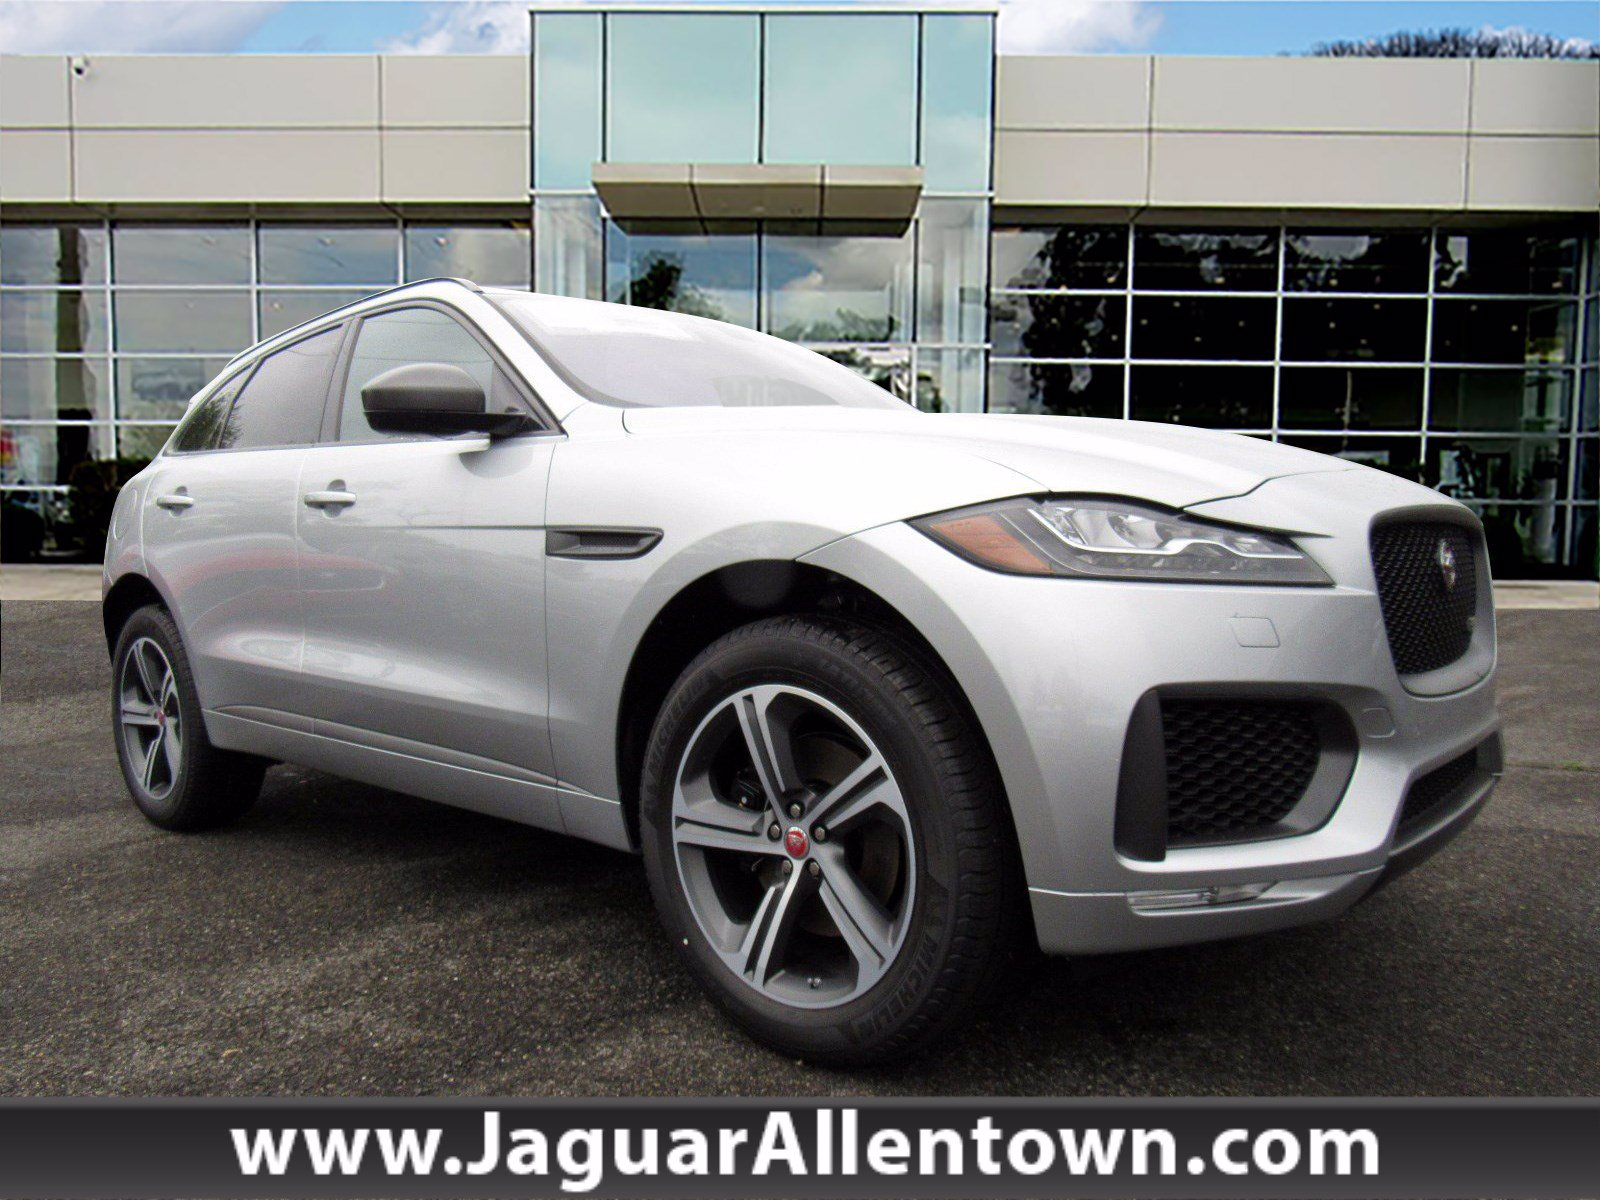 New 2020 Jaguar F-PACE 300 Sport Limited Edition